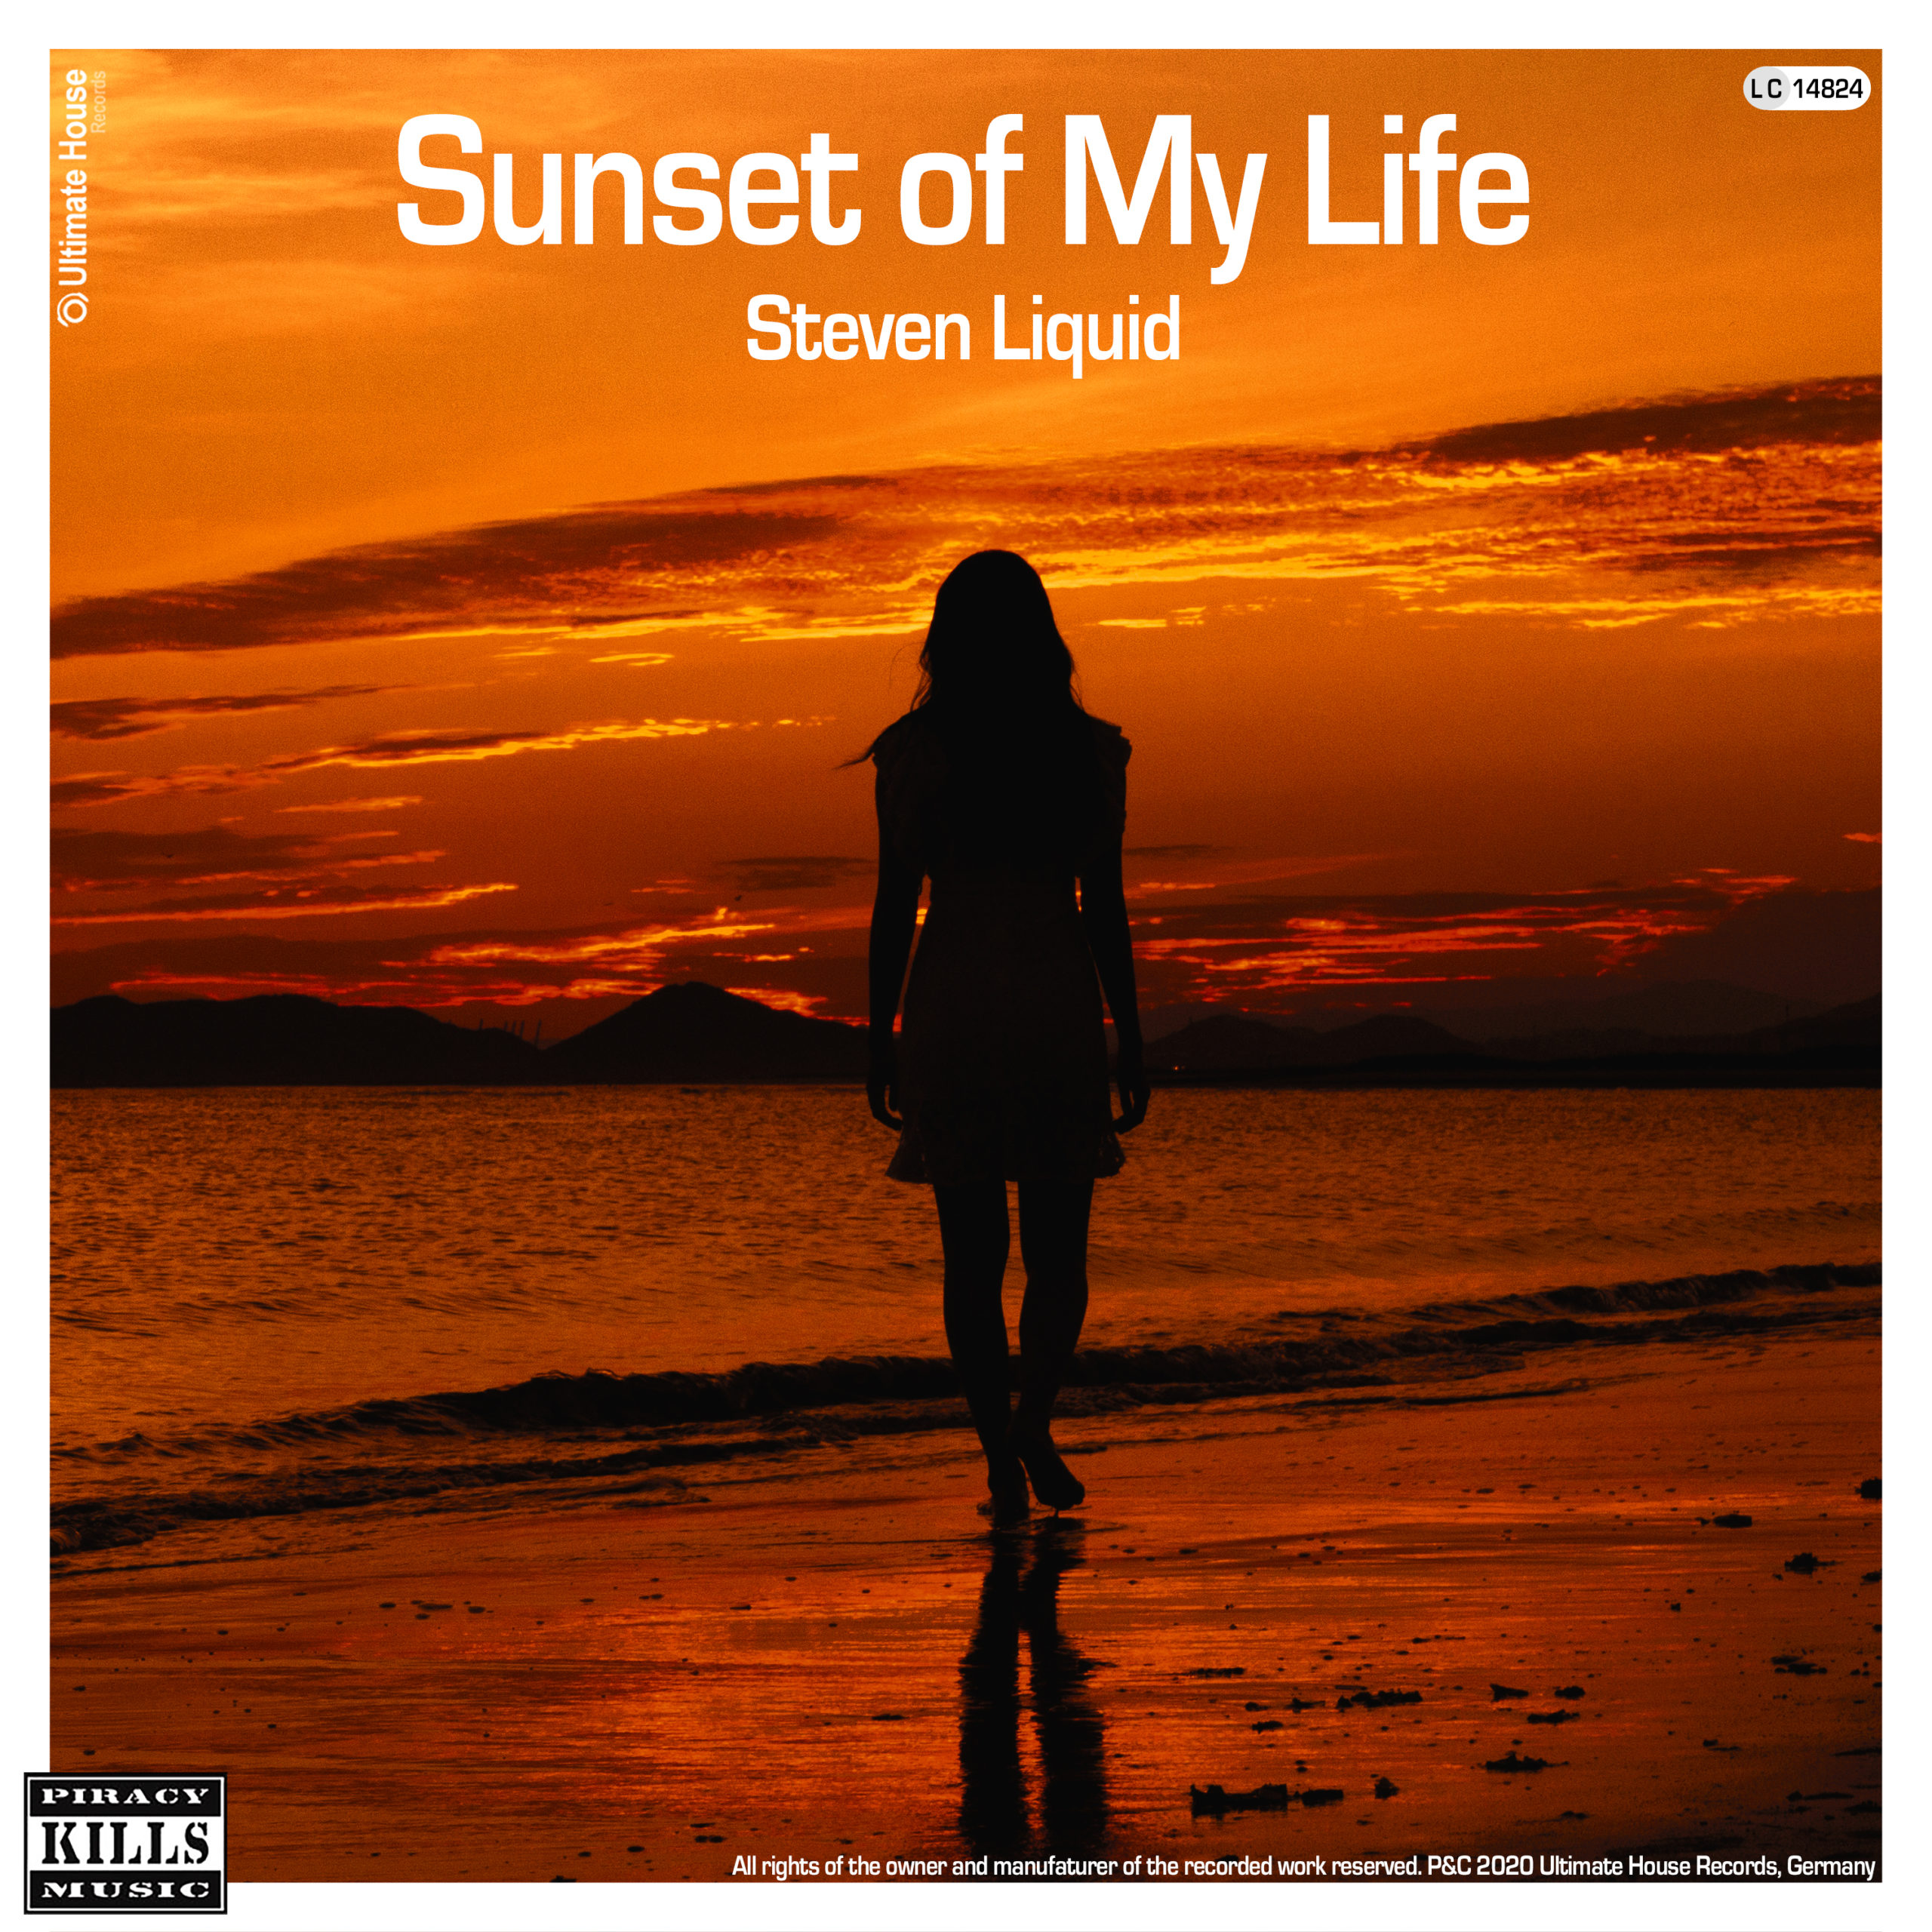 https://www.ultimate-house-records.com/wp-content/uploads/2020/01/136-Steven_Liquid-Sunset_of_My_Life-Cover_3000px-scaled.jpg